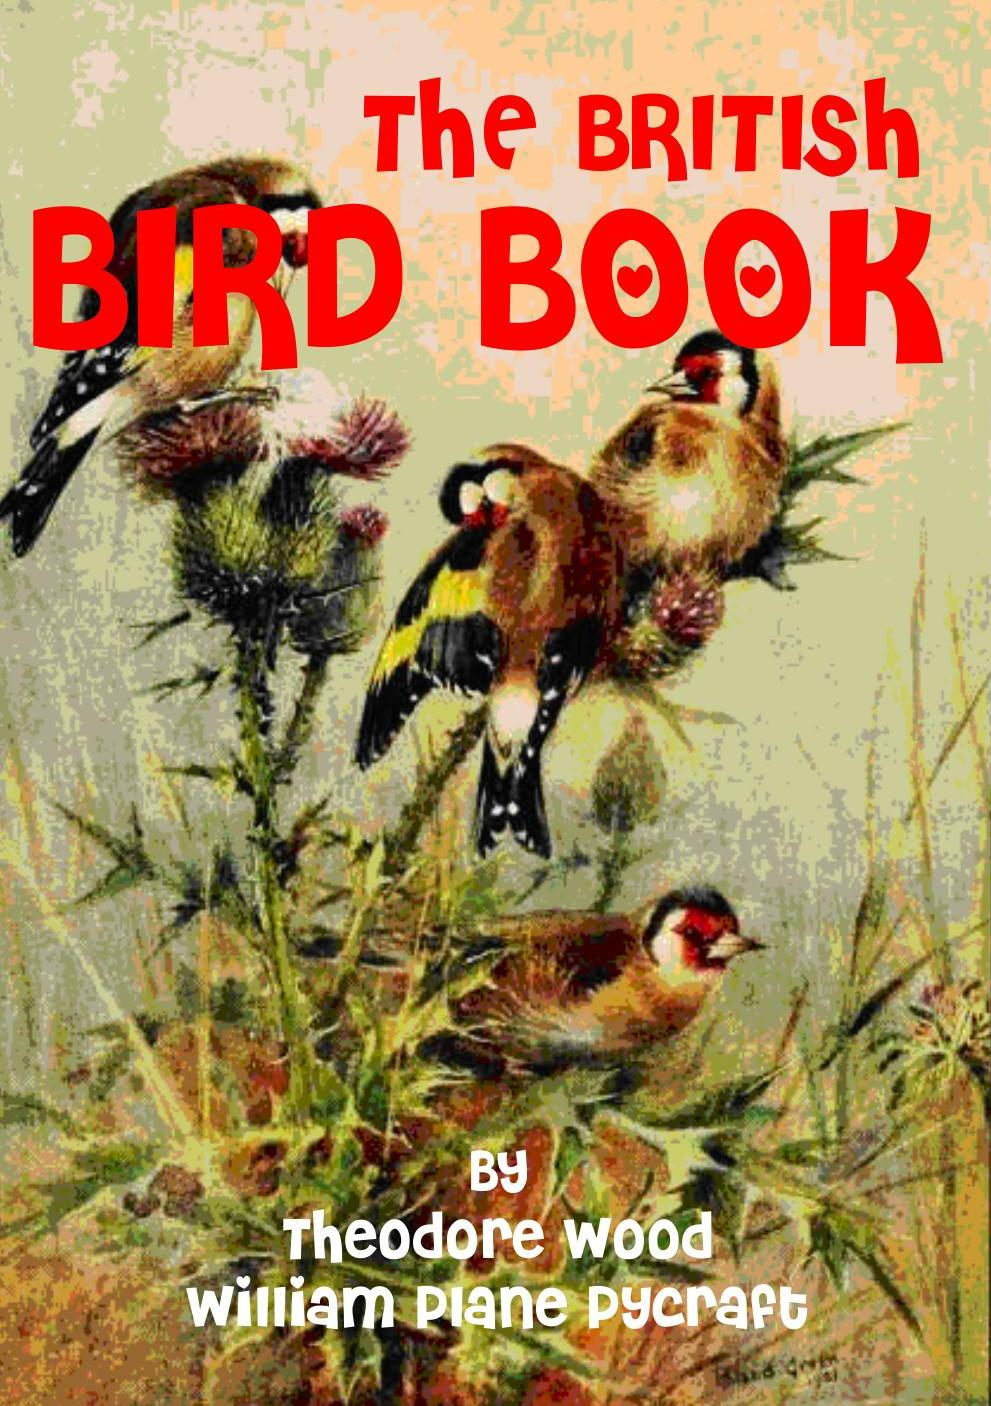 The British bird book By: Theodore Wood,William Plane Pycraft